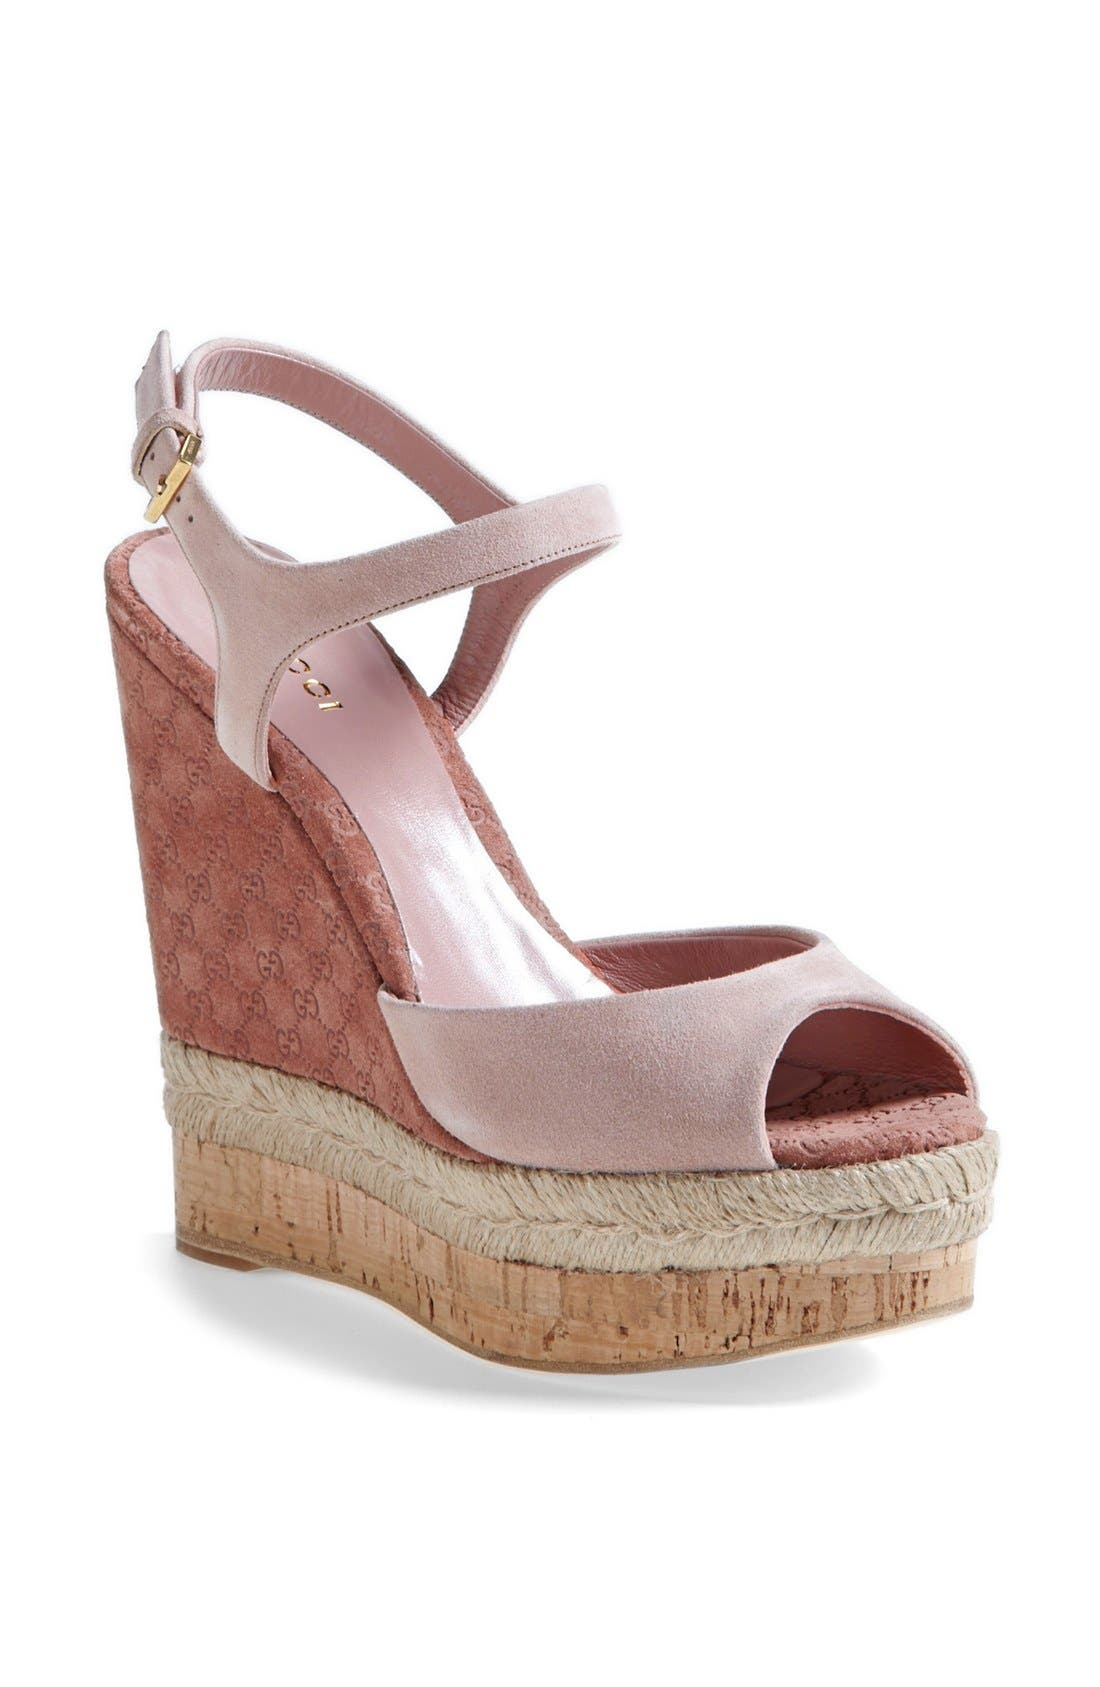 Alternate Image 1 Selected - Gucci 'Hollie' Wedge Sandal (Women)